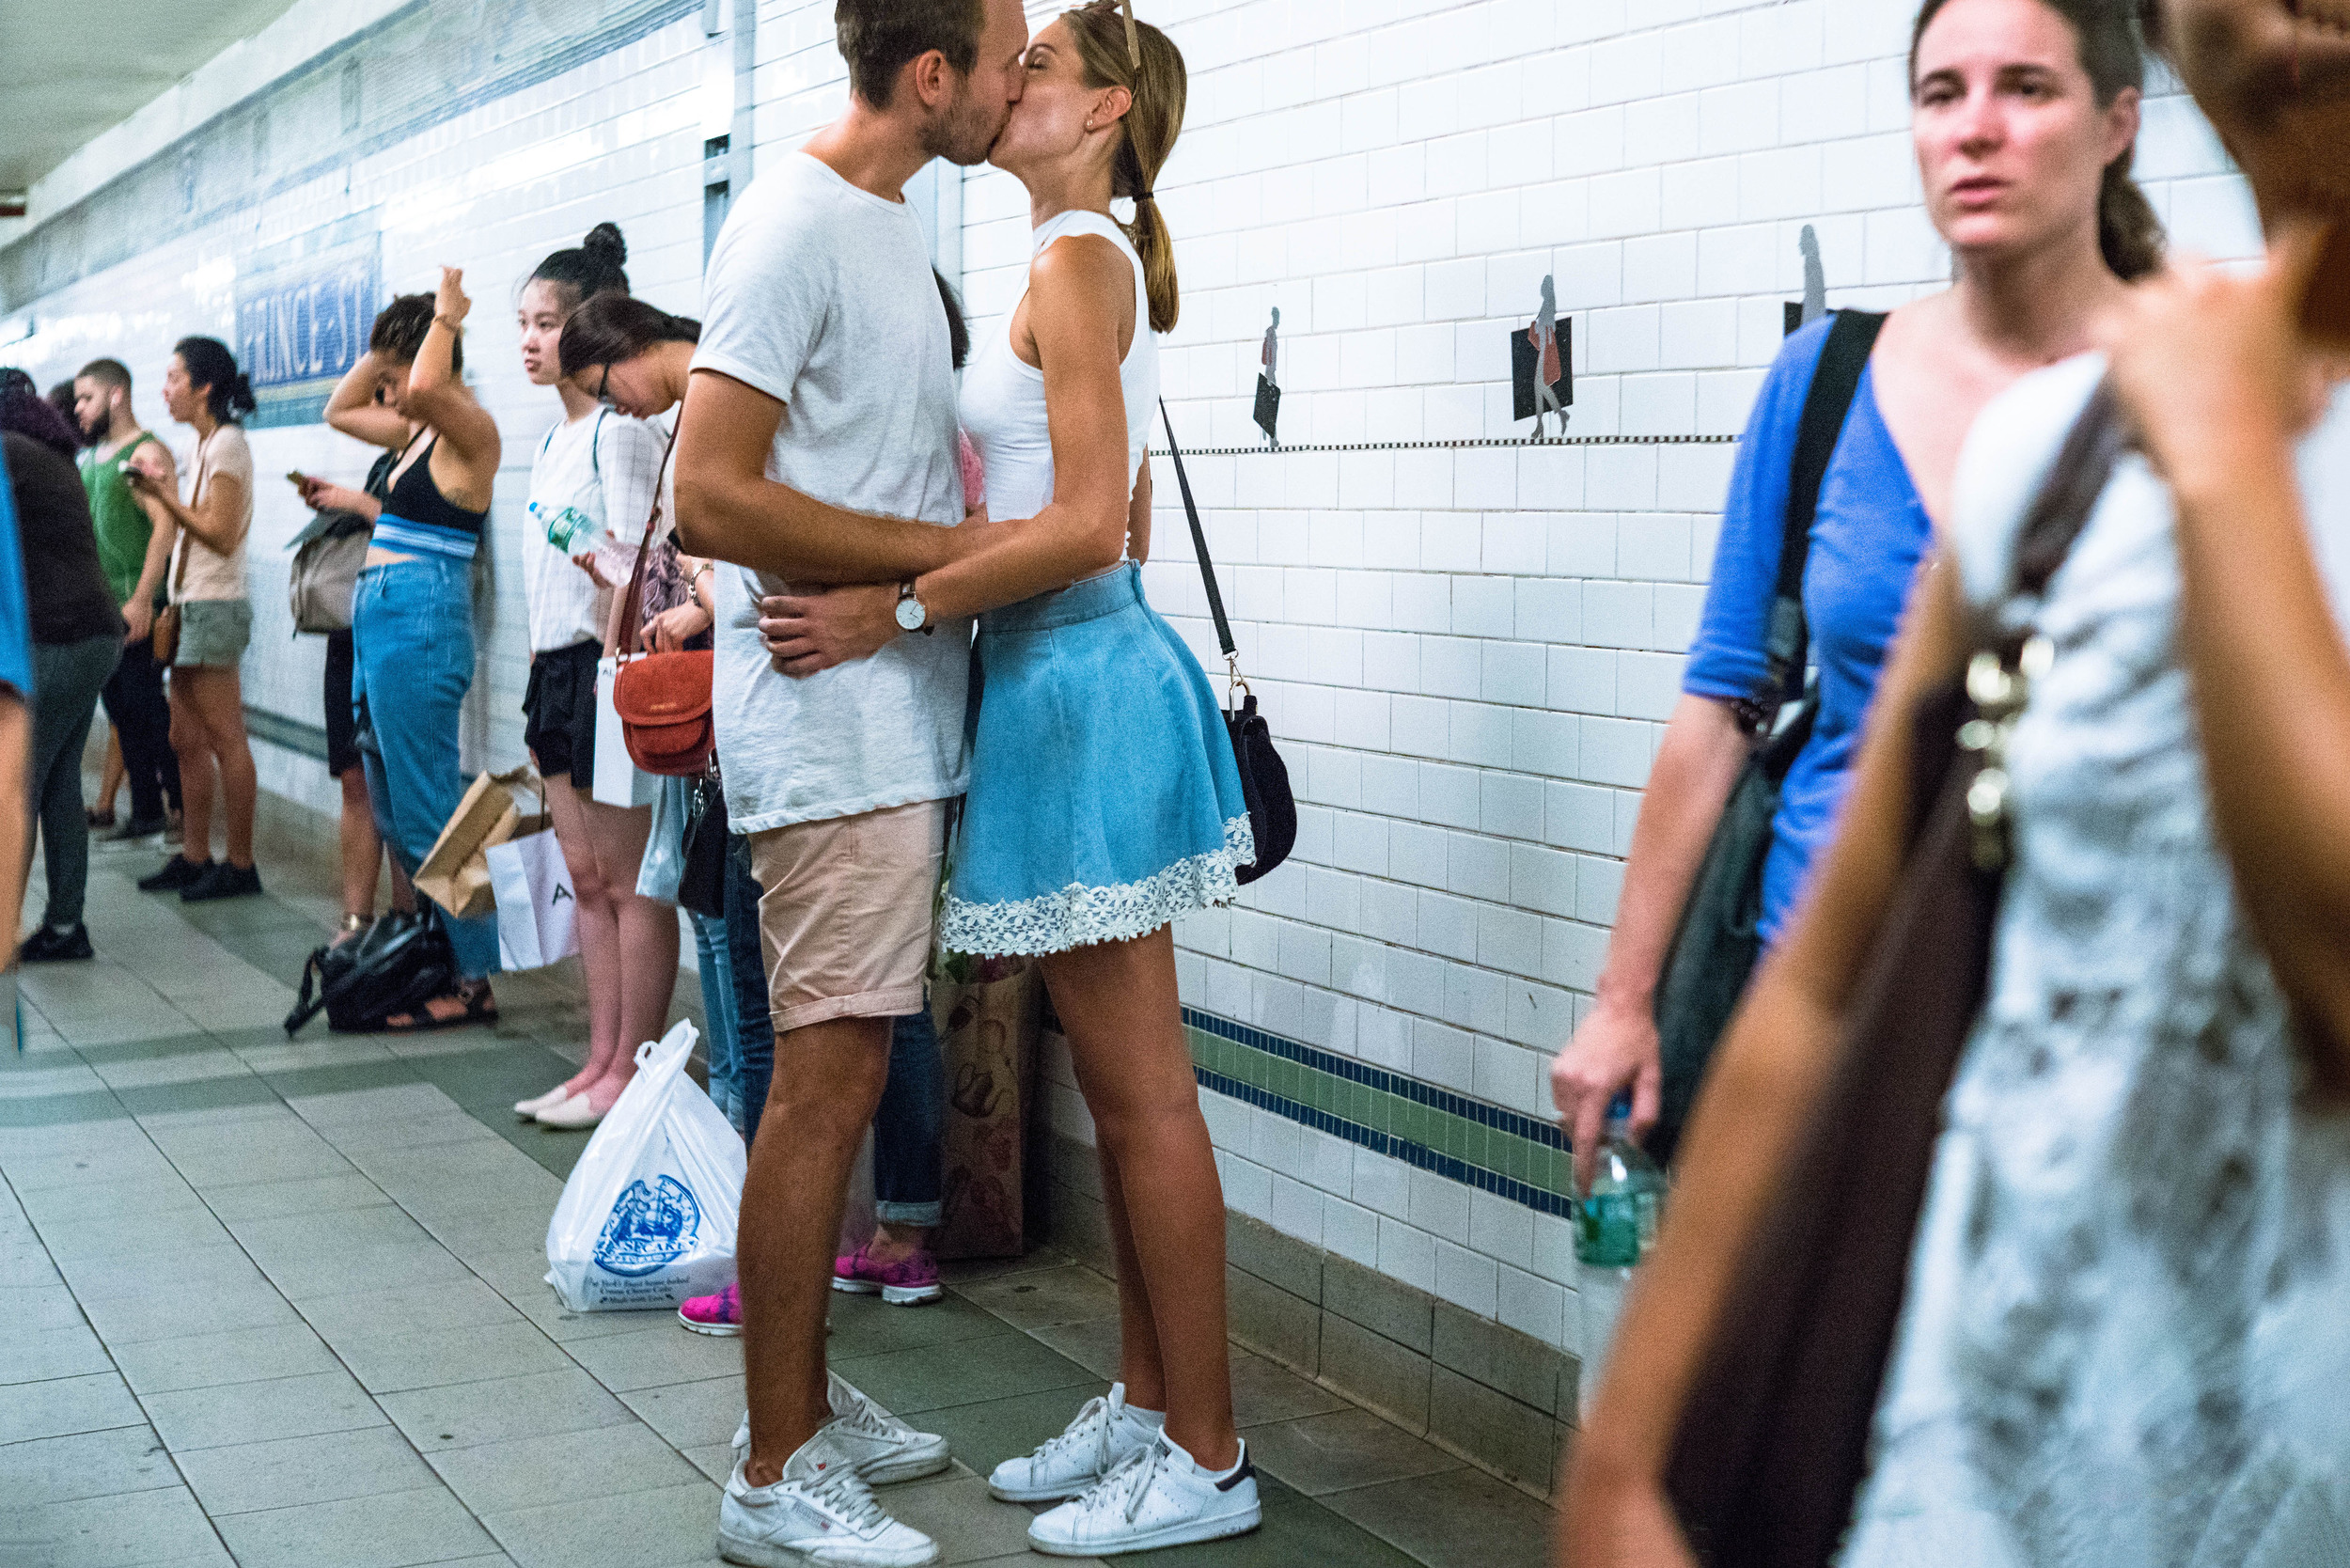 I shot this in the subway station, with no more room to back up to get the two subjects into the frame. I got her into the frame. Unfortunately, part of his head was outside the frame.